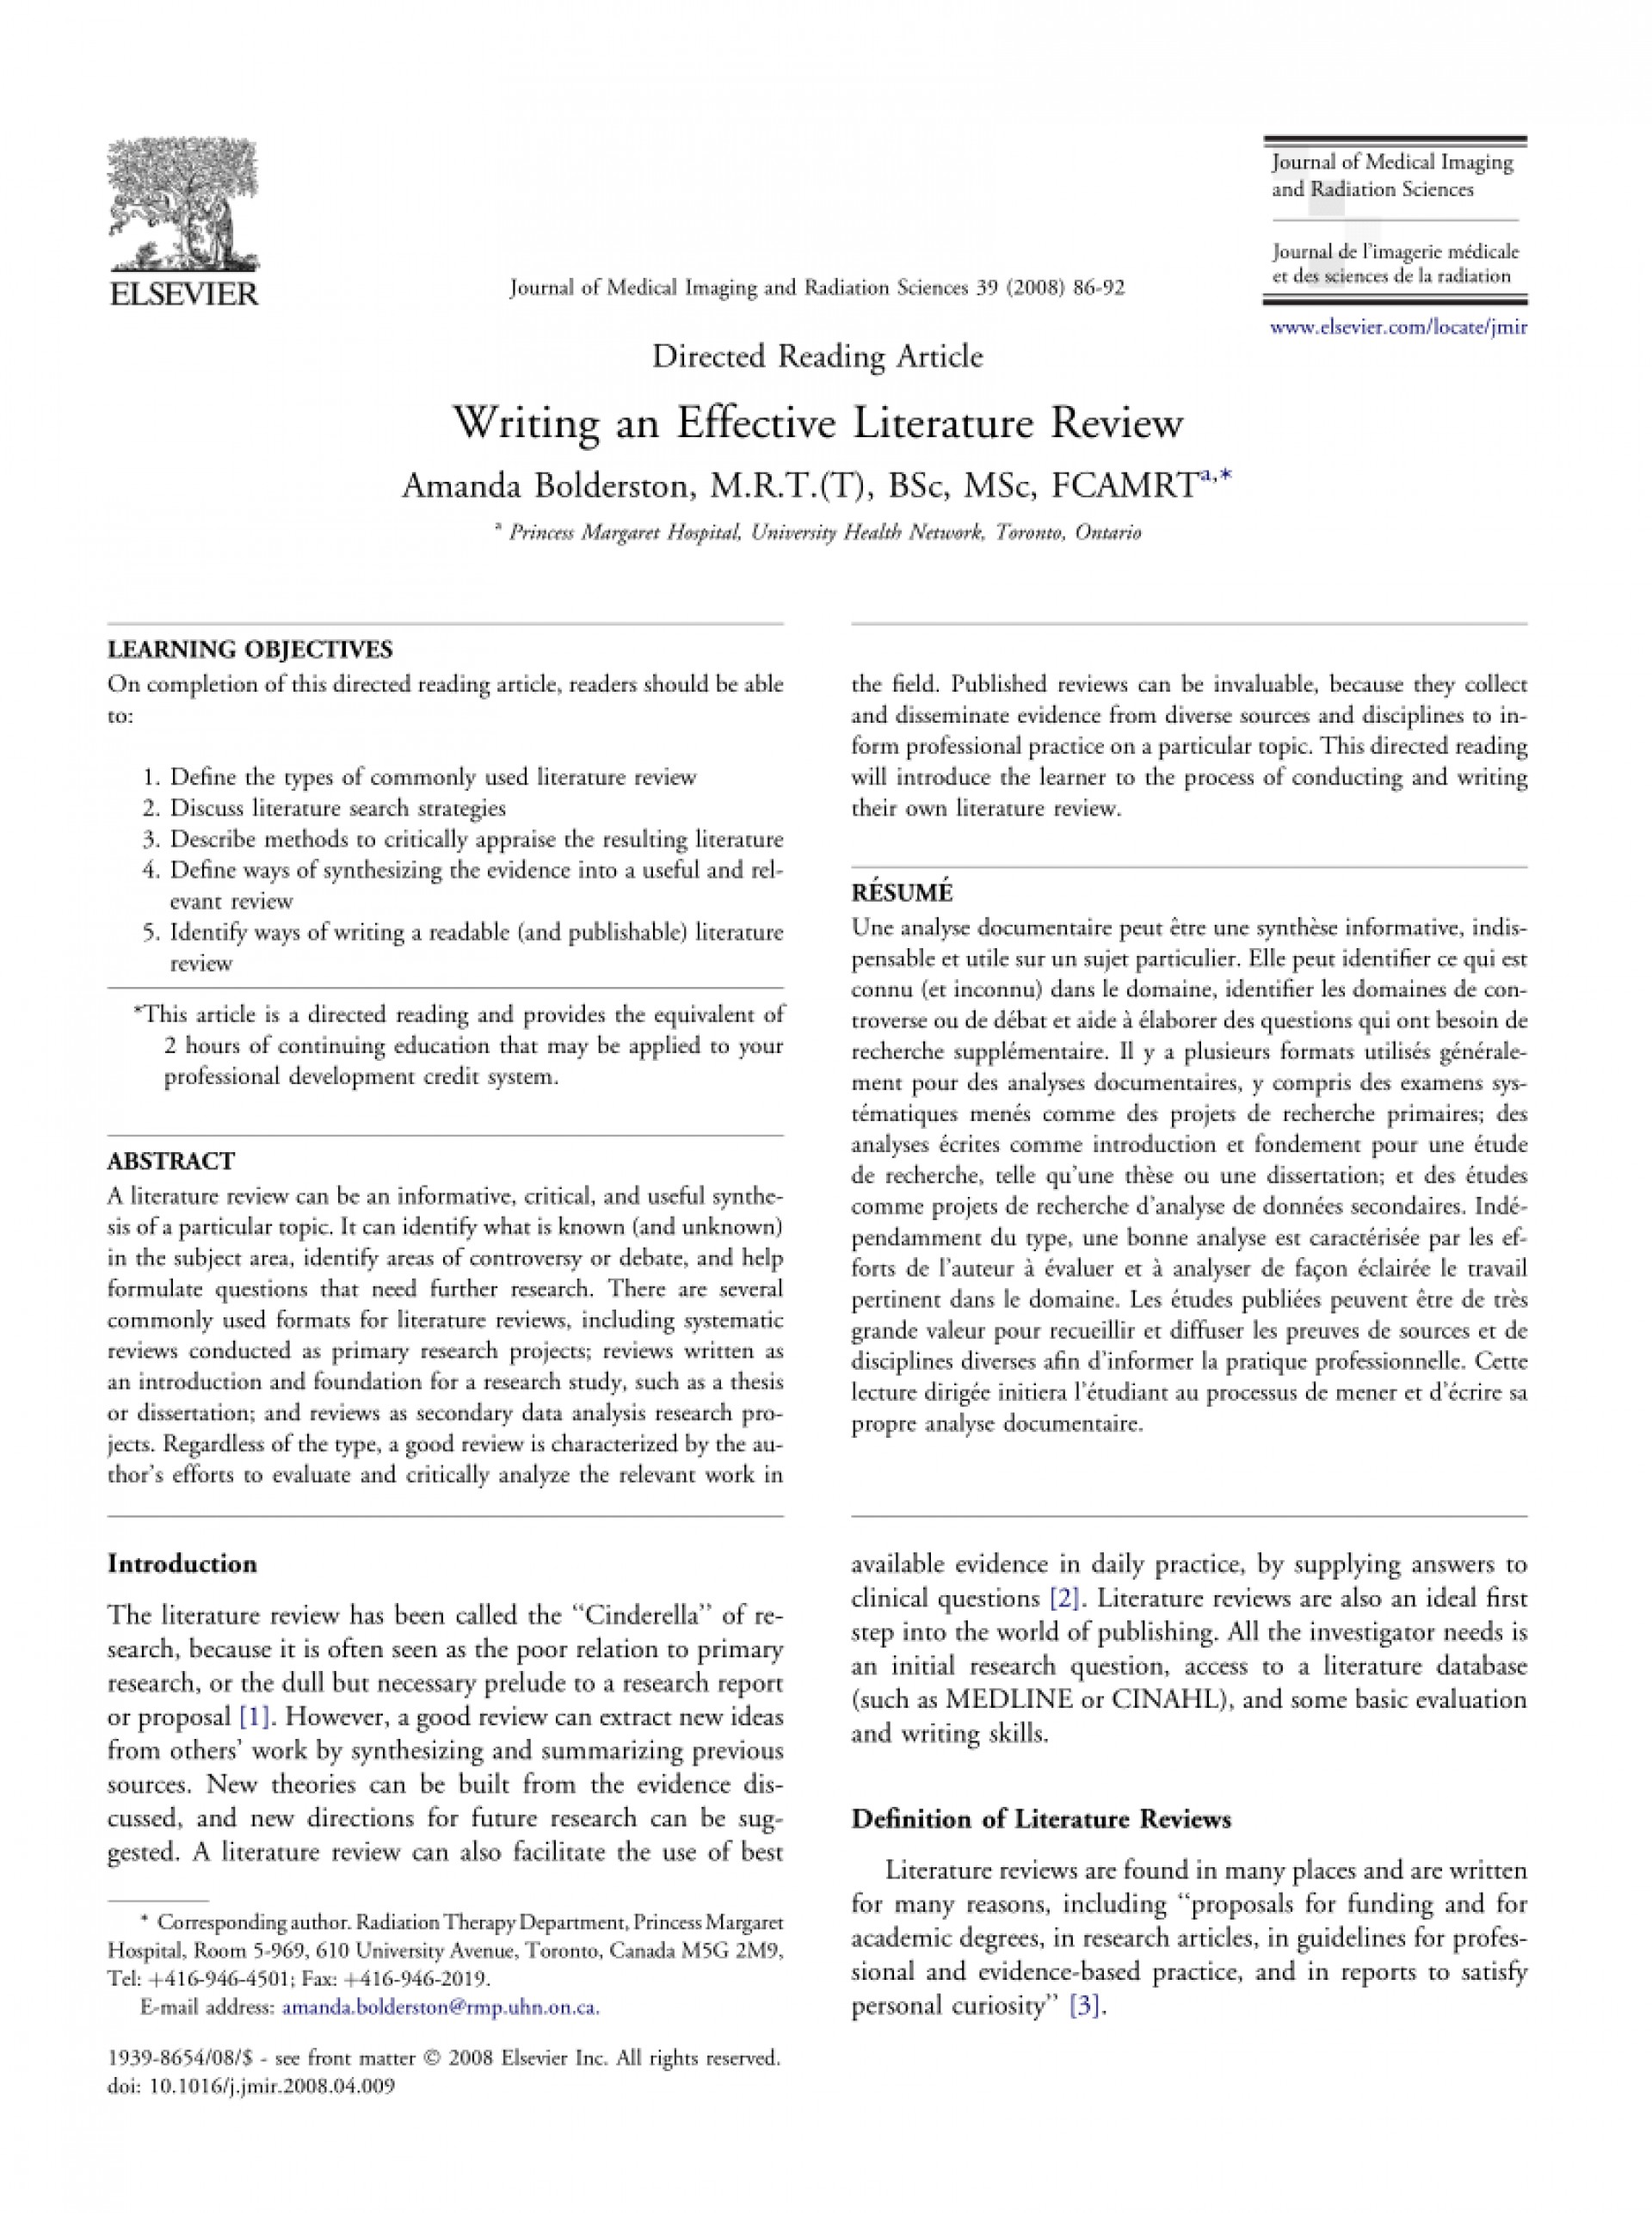 018 Including Literature Review In Research Paper Impressive Meaning Of How To Write Related Pdf 1920